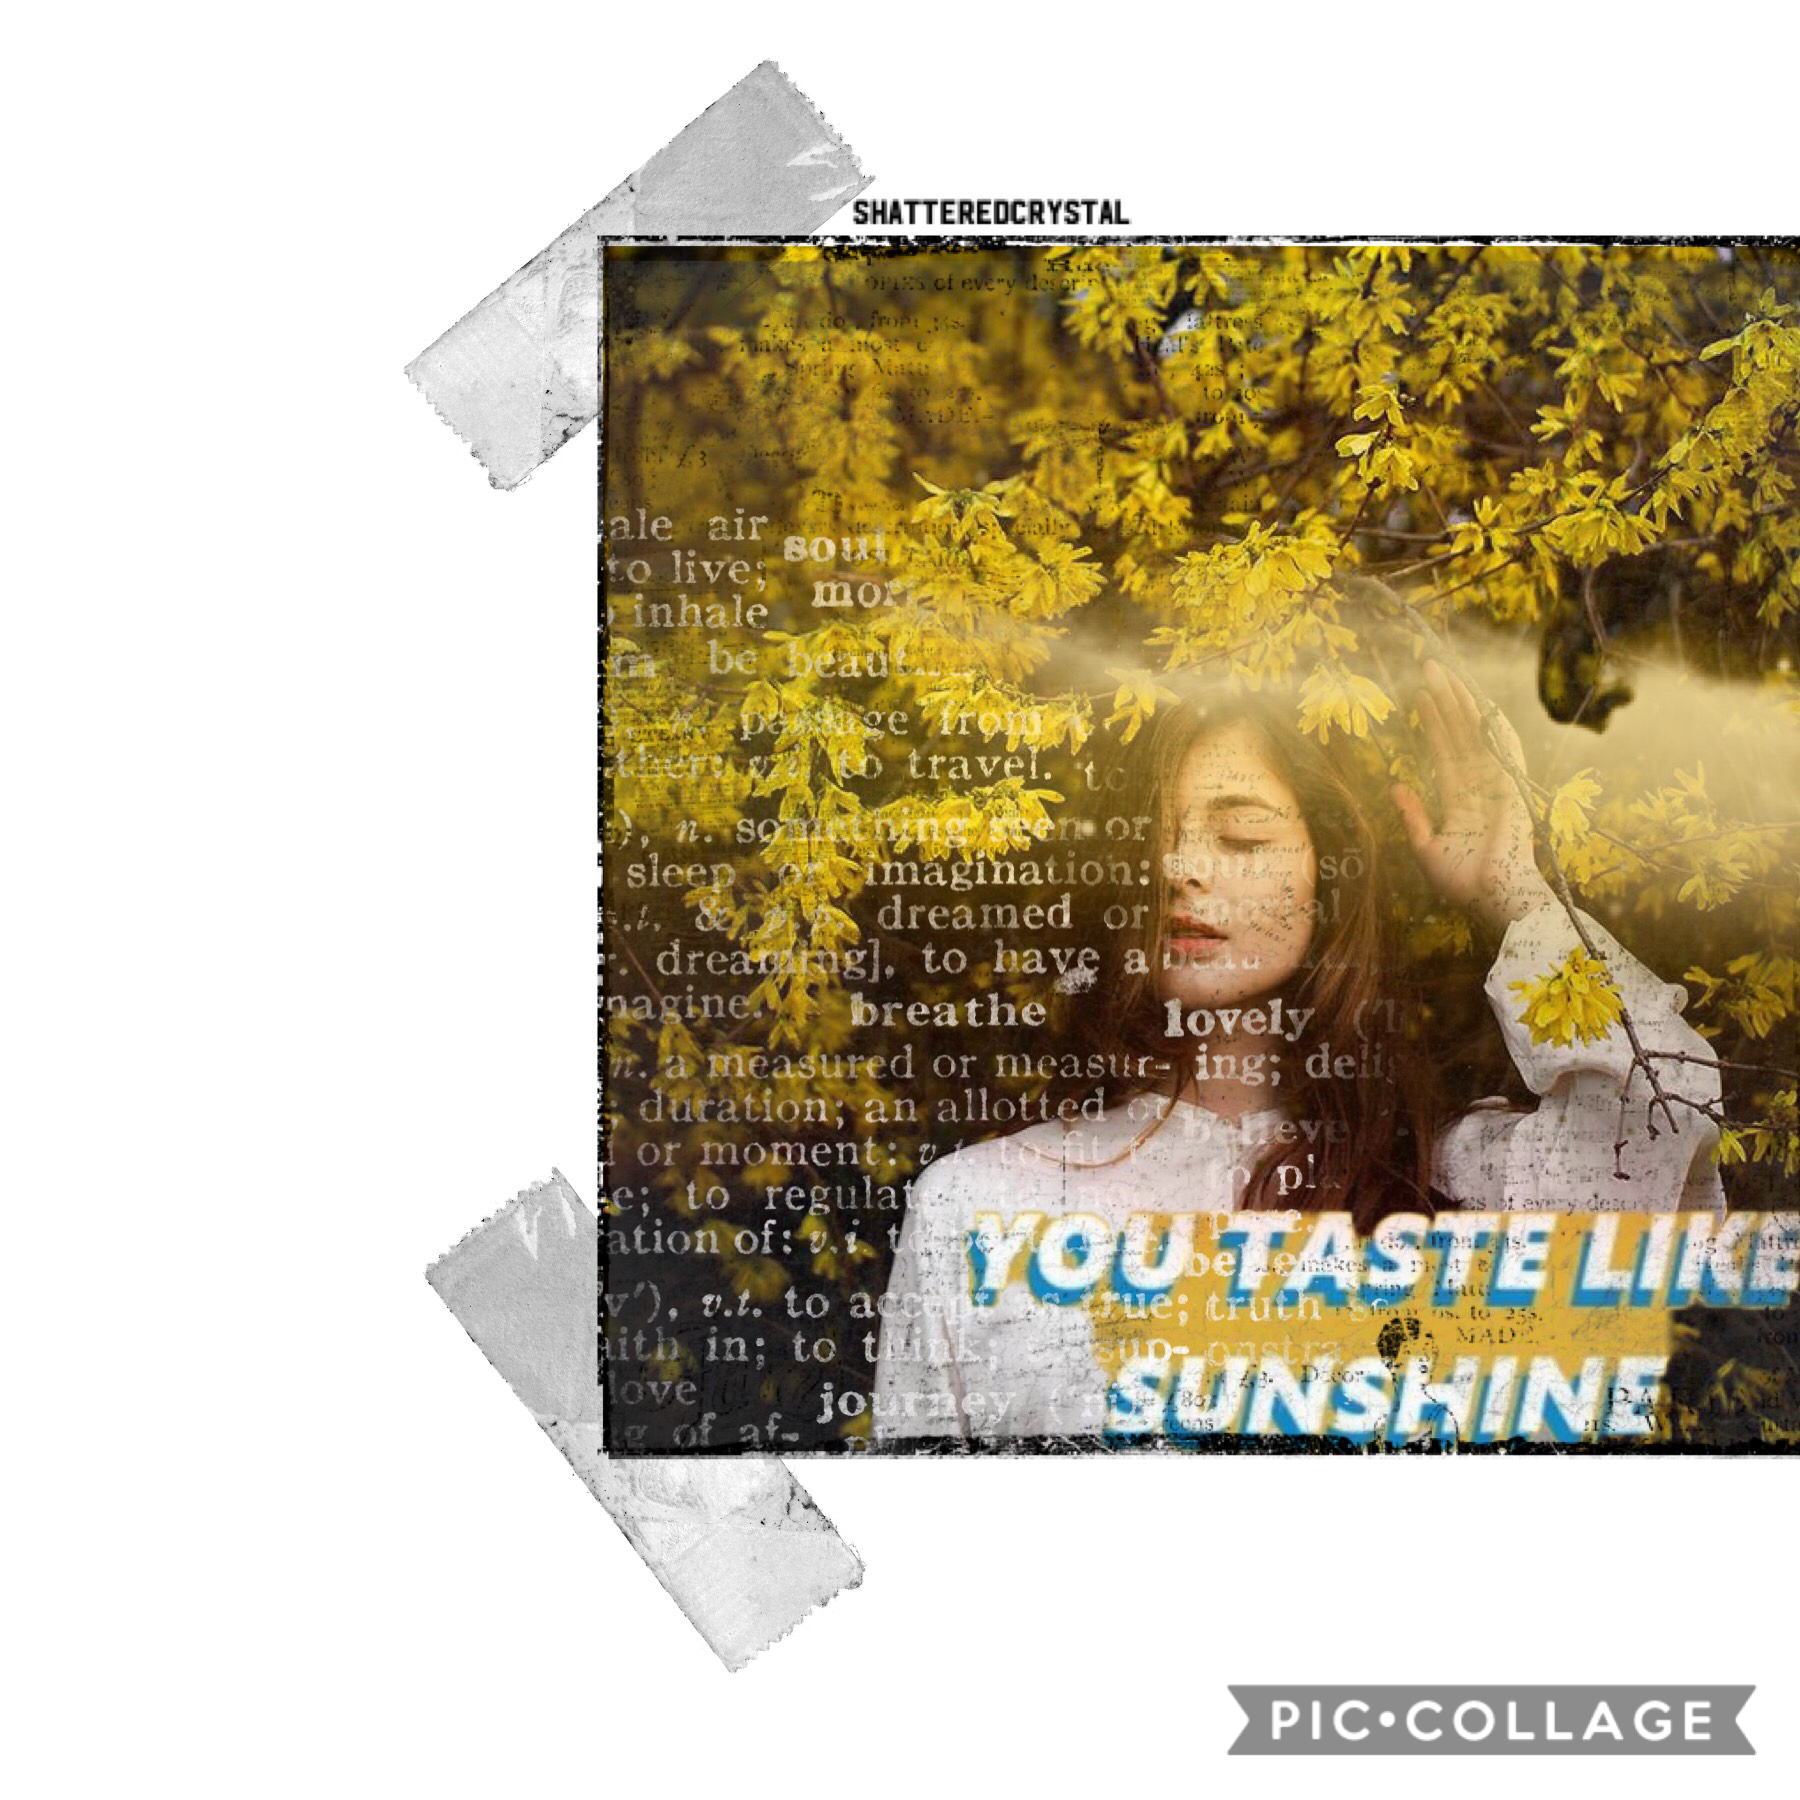 i made this a longgggg time ago and has just been in my collages😅💛☀️